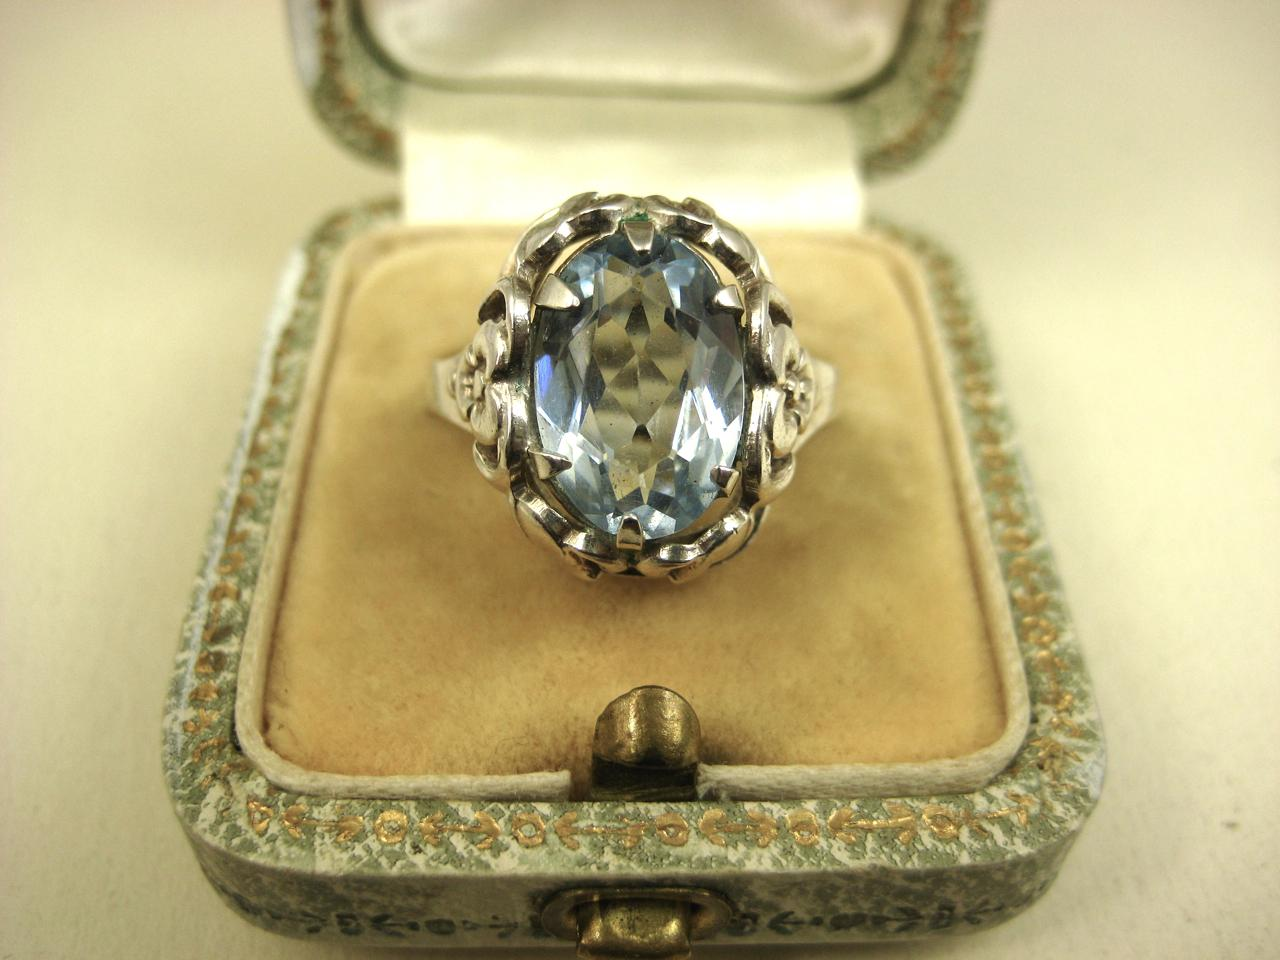 art deco jugendstil blue gemstone 835 silver ring c1940. Black Bedroom Furniture Sets. Home Design Ideas